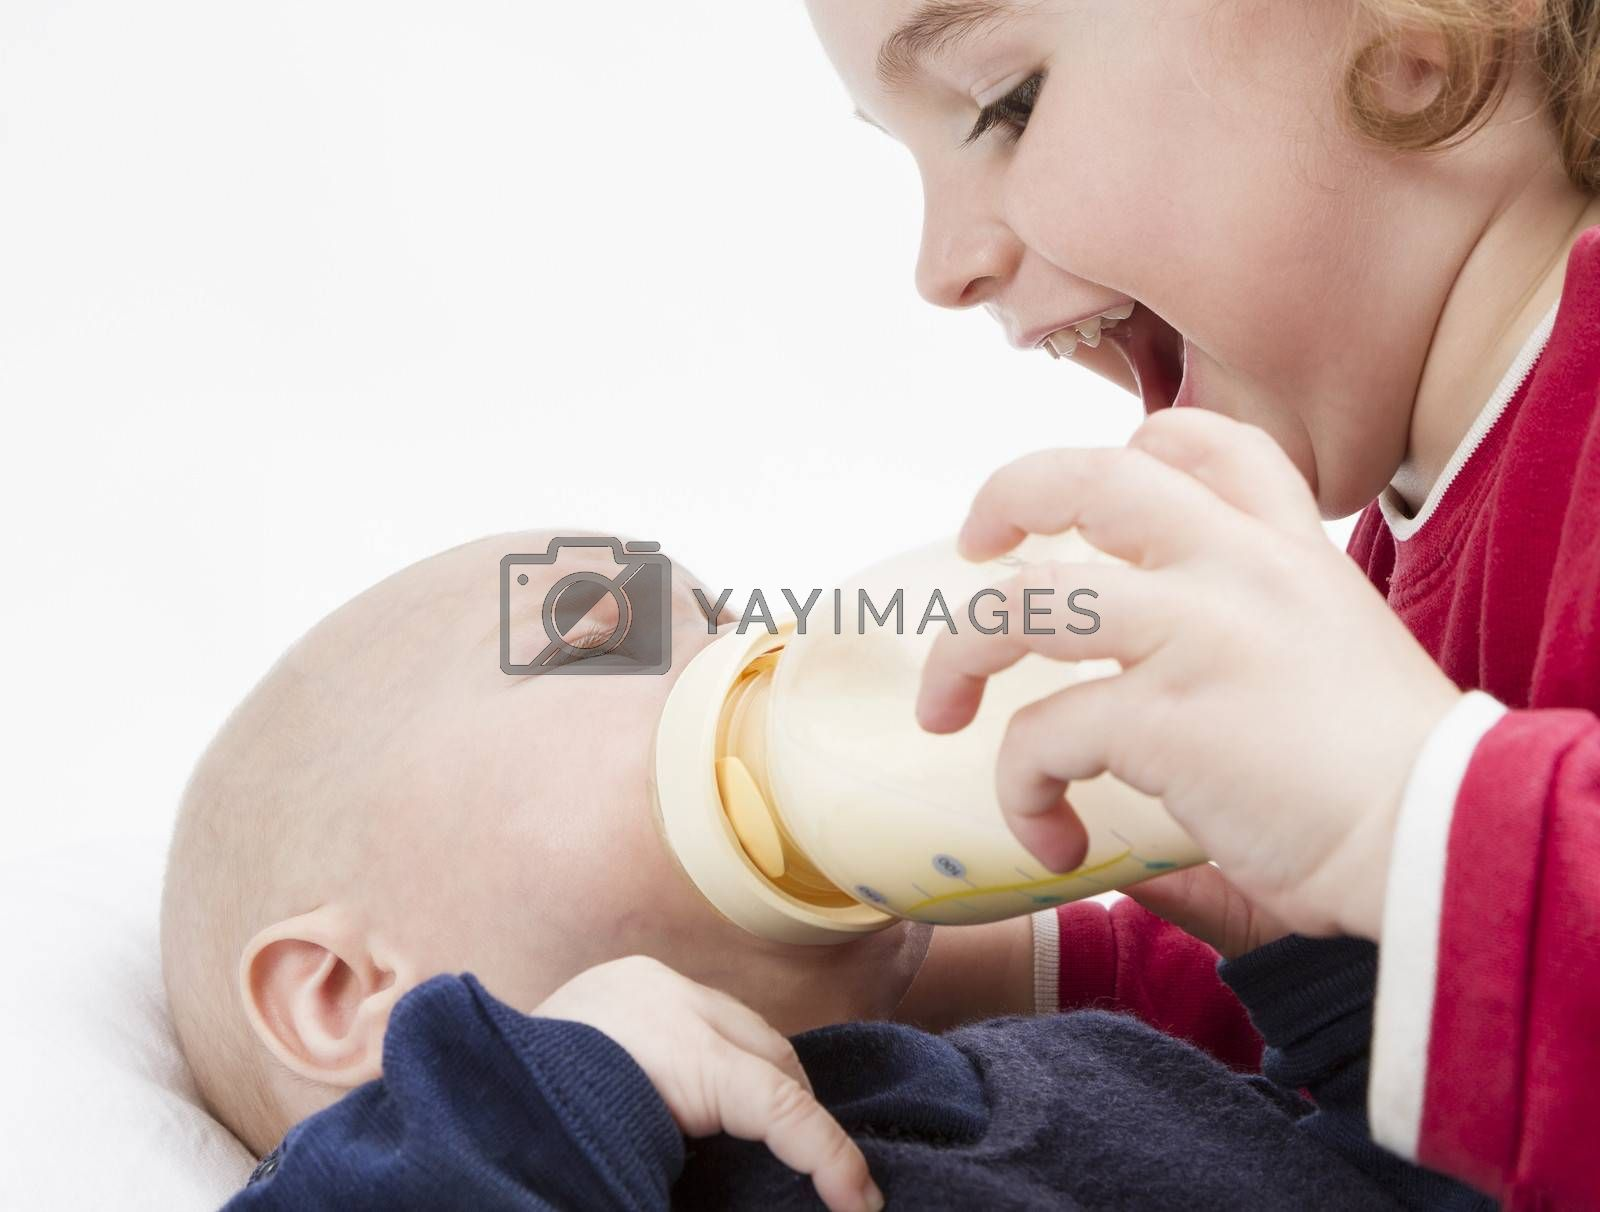 Royalty free image of young child feeding toddler with milk bottle by gewoldi